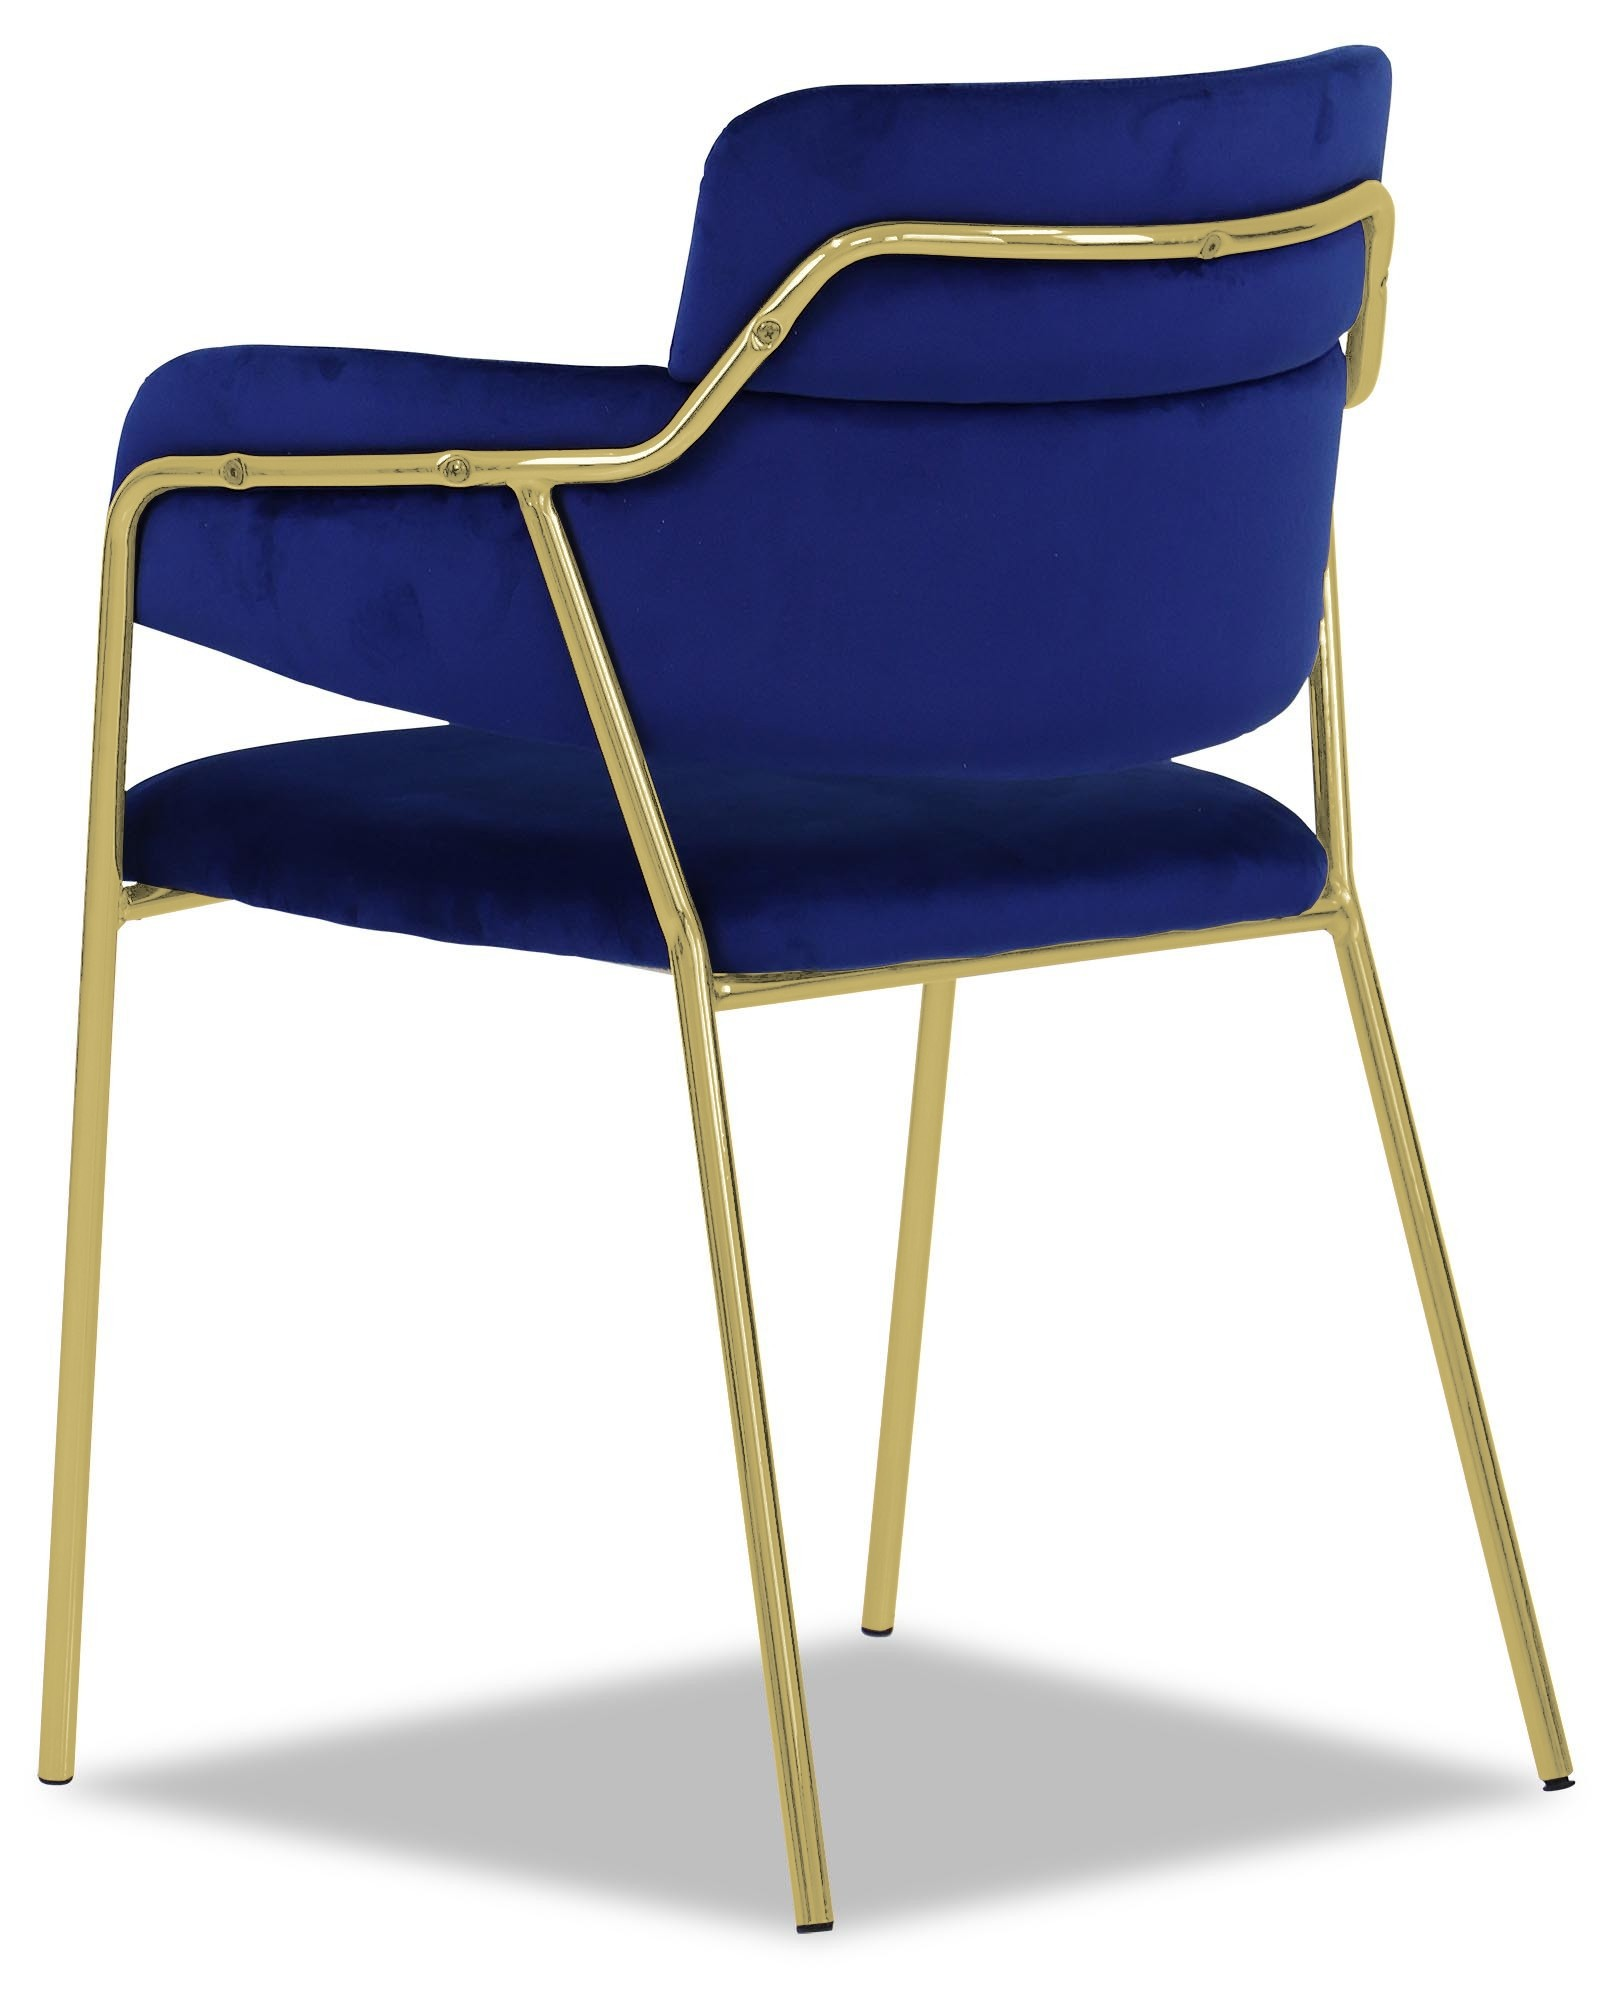 Cobalt Blue Chair Emmiel Chair With Gold Legs In Royal Blue